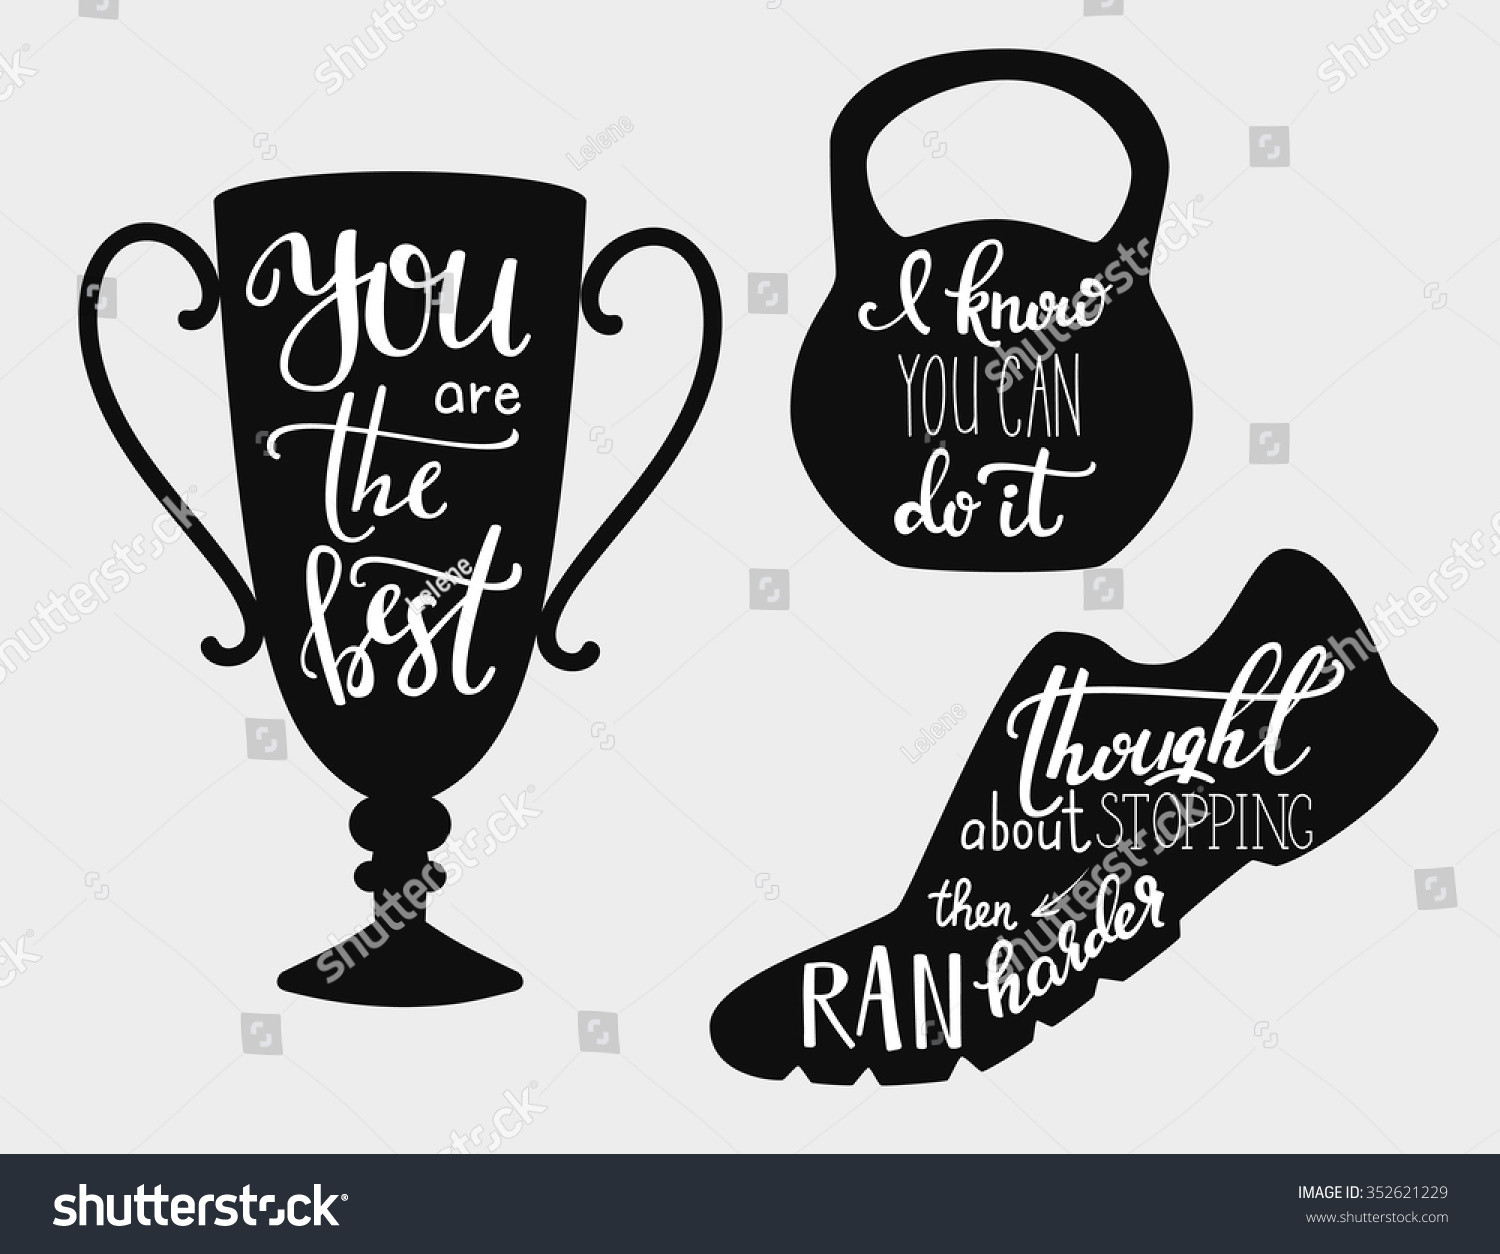 You Are The Best Quotes: Lettering Quotes Motivation For Sport. Calligraphy Style